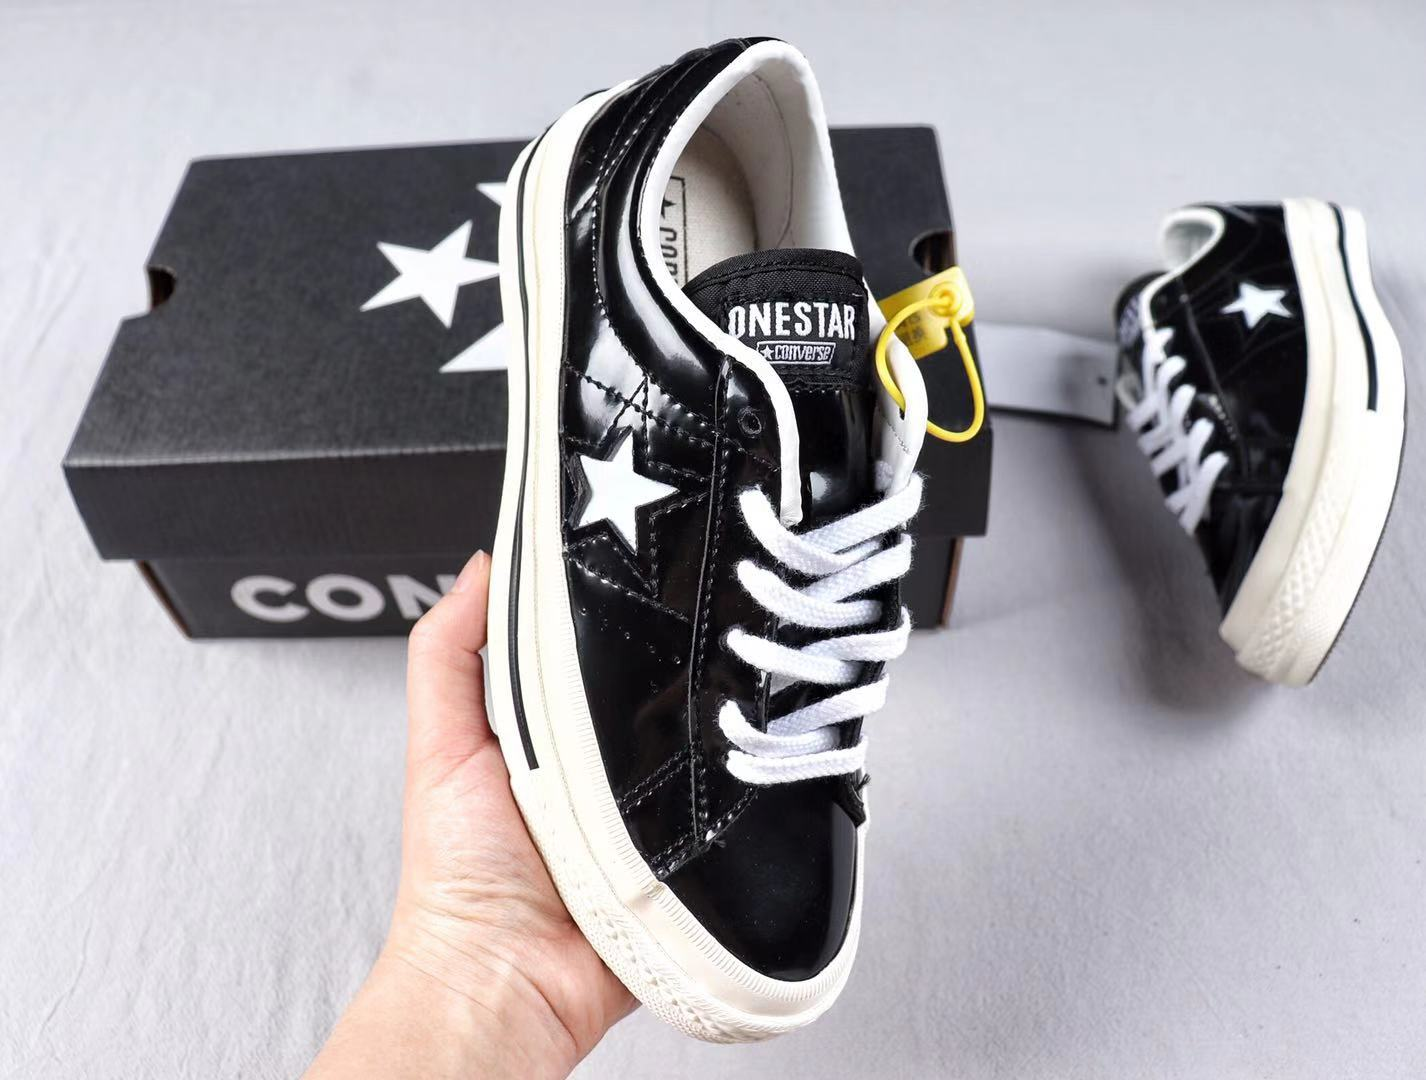 Converse One Star Black/White Skate Boarding Shoes Super Deals